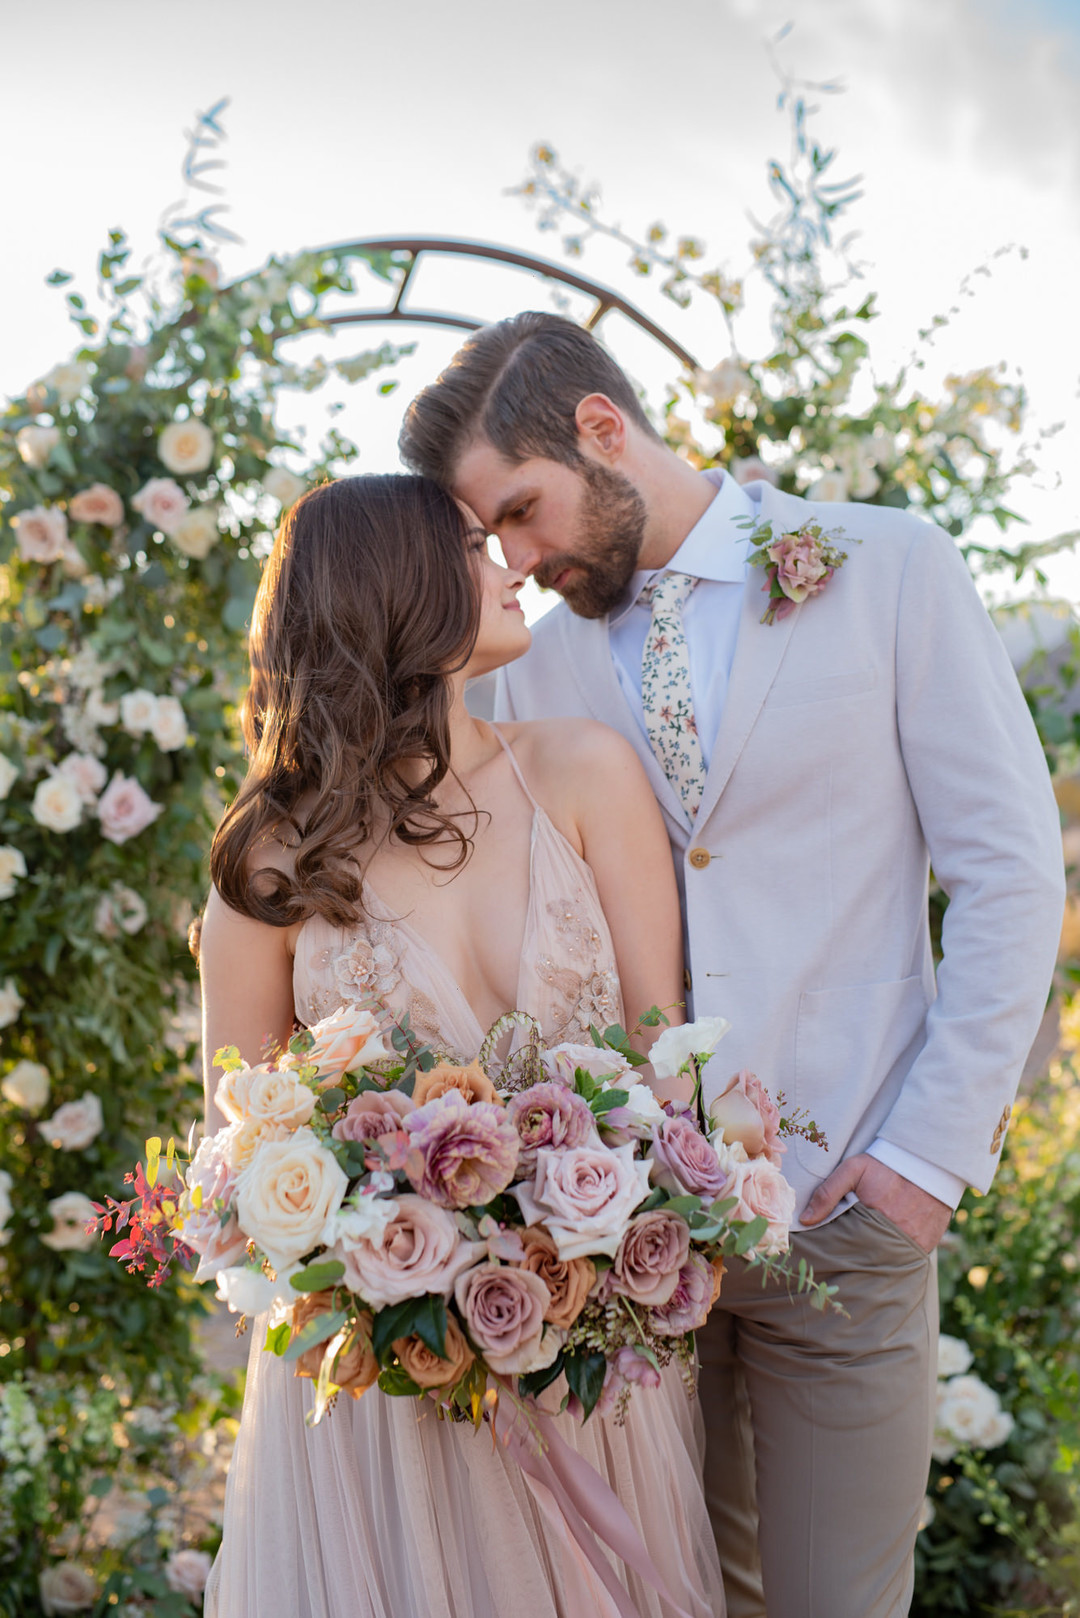 Gorgeous Bride and Groom with floral backdrop